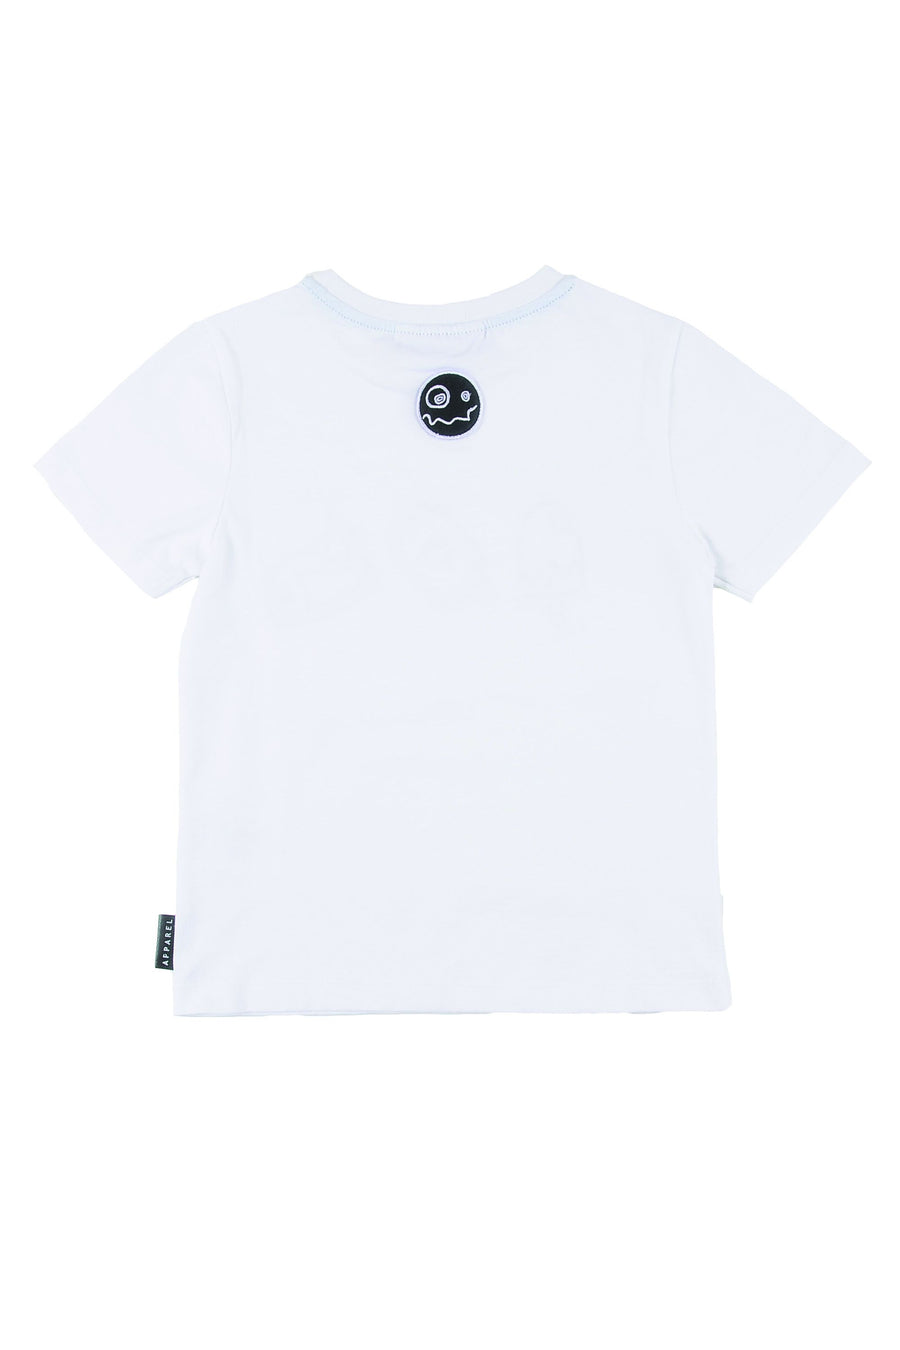 Flash White Tee by LOUD